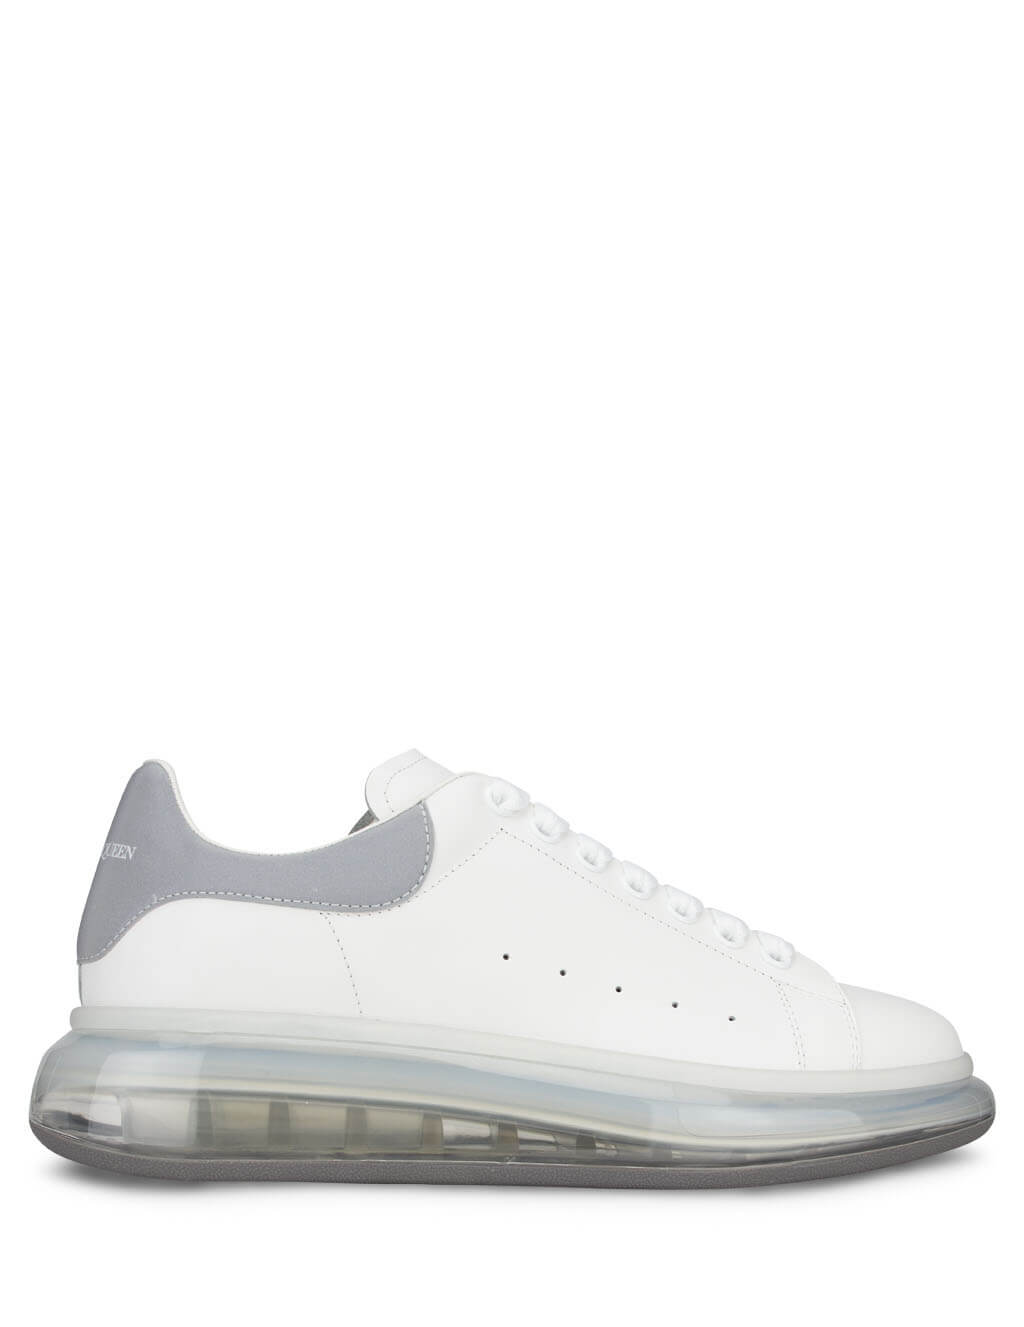 Alexander McQueen Men's White Transparent Sole Oversized Sneakers 610812WHYBH9058